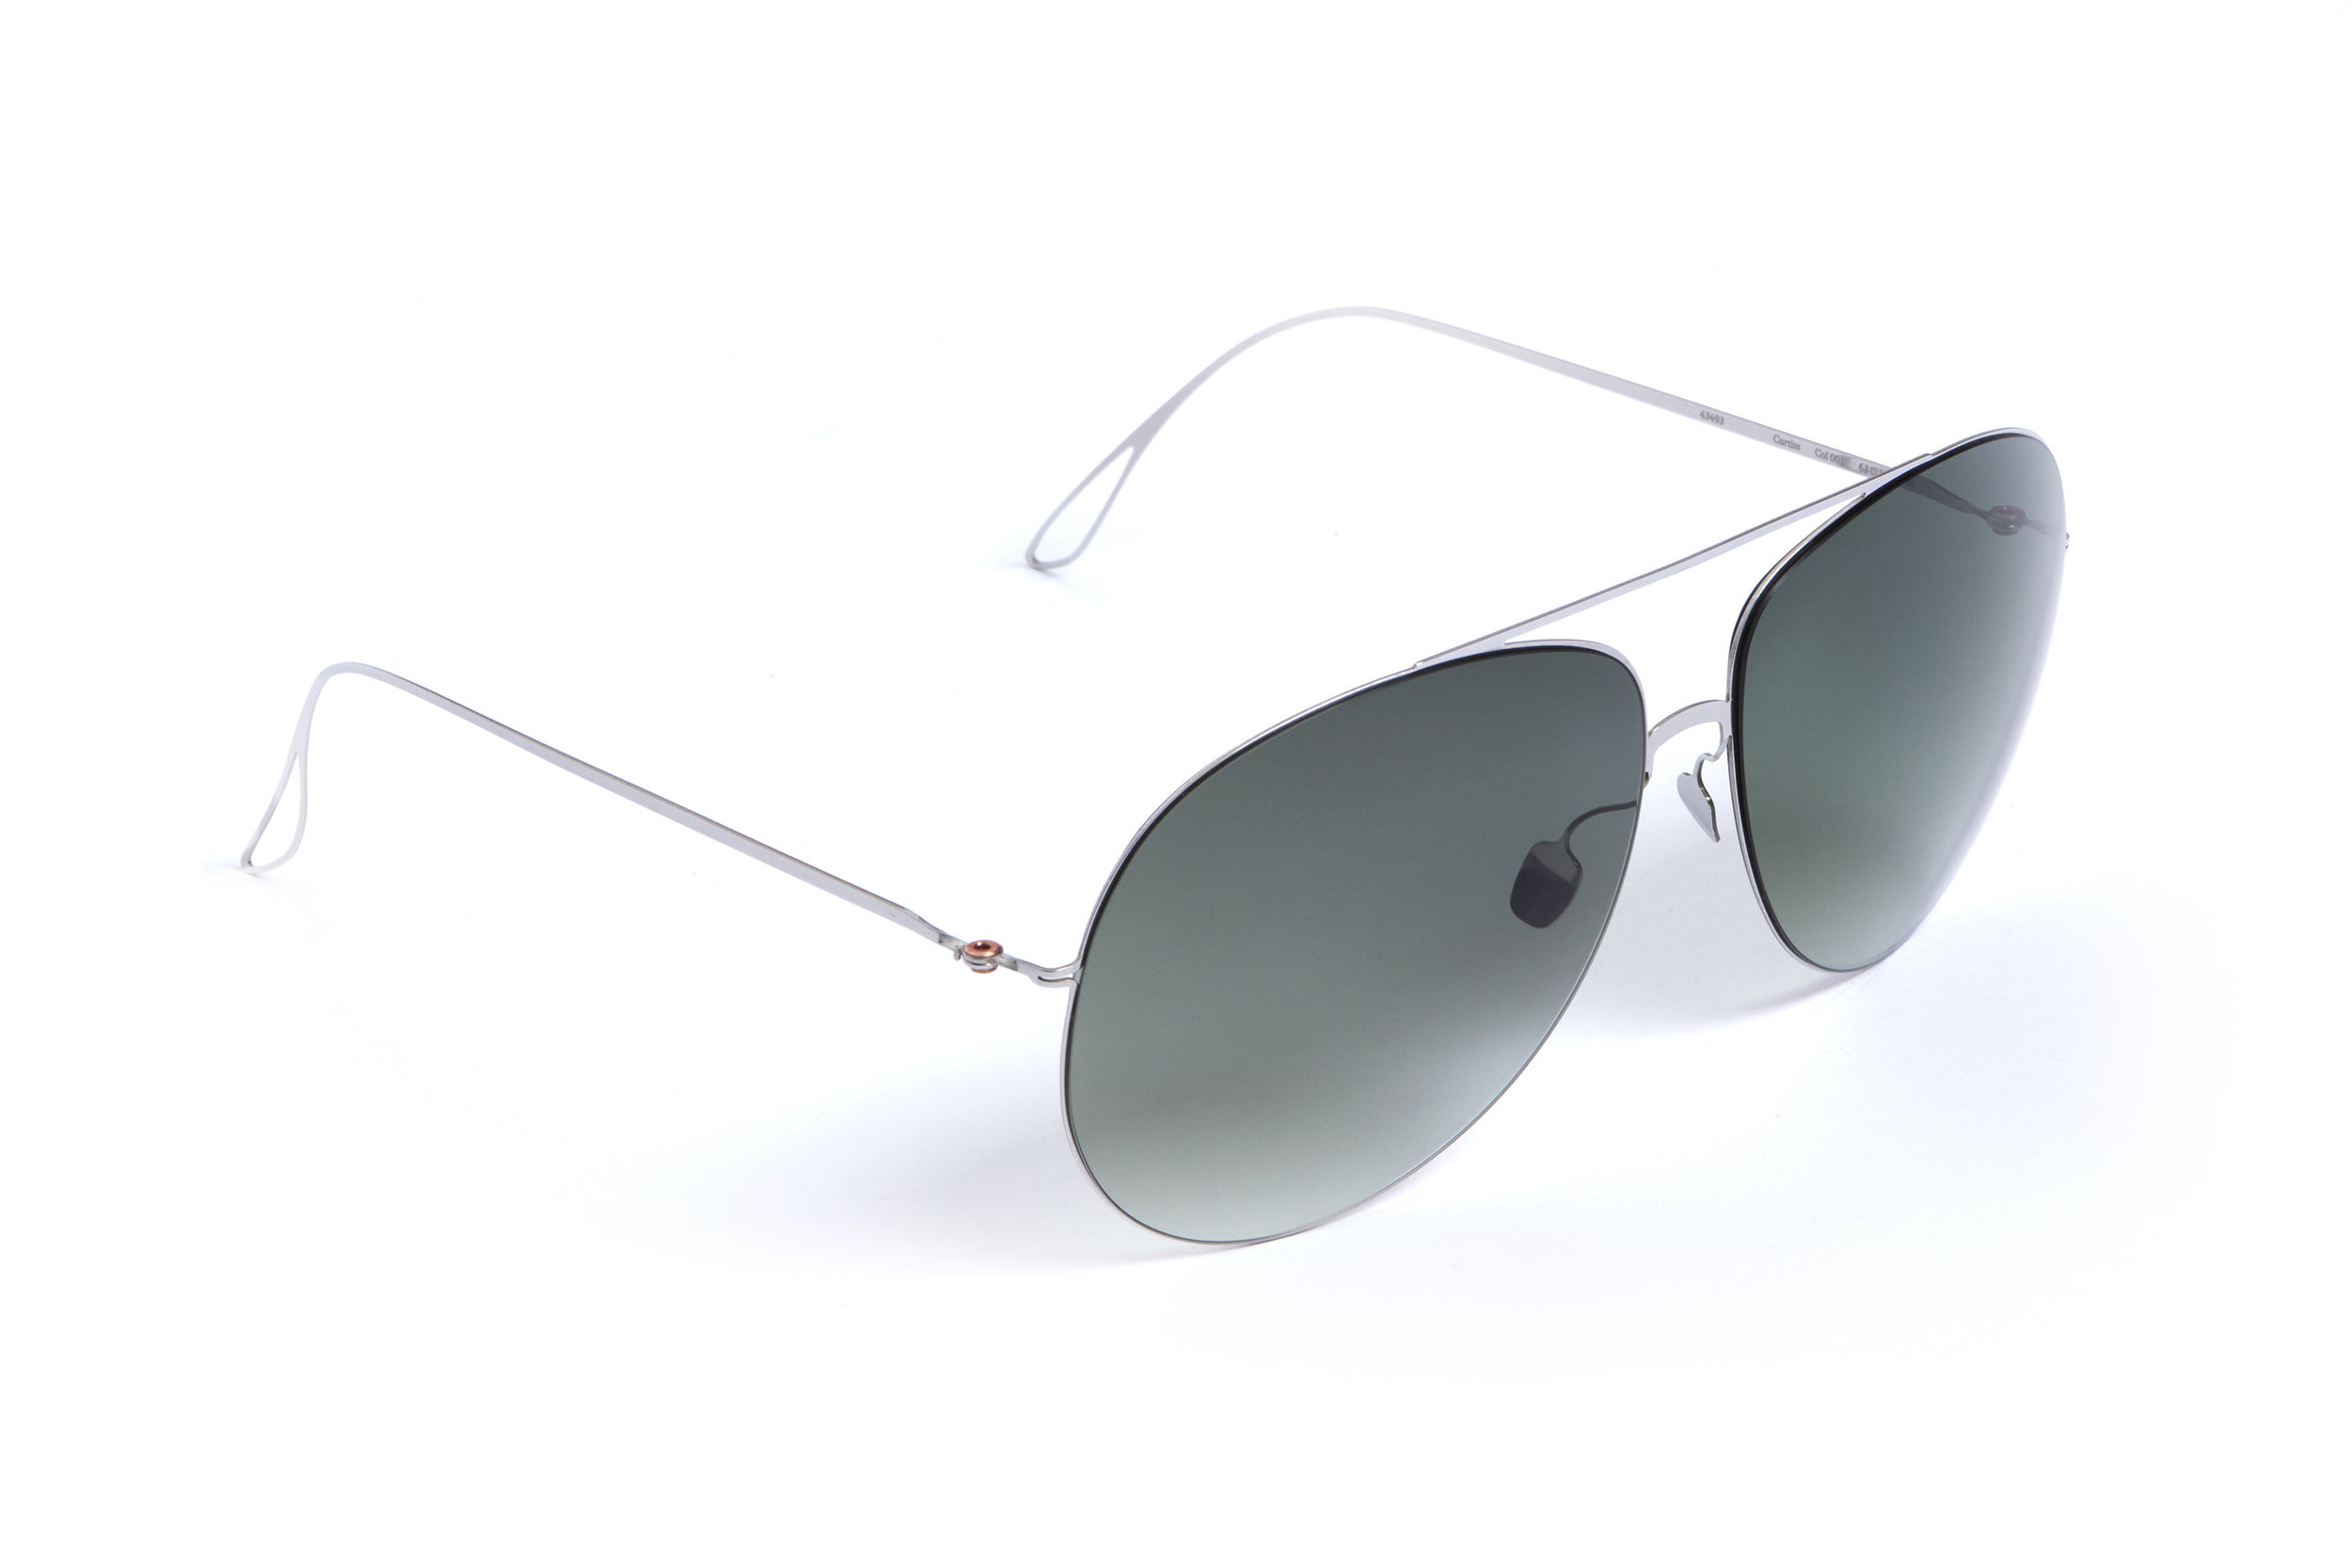 haffmans_neumeister_curtiss_silver_amazon_gradient_ultralight_sunglasses_angle_102480.jpg